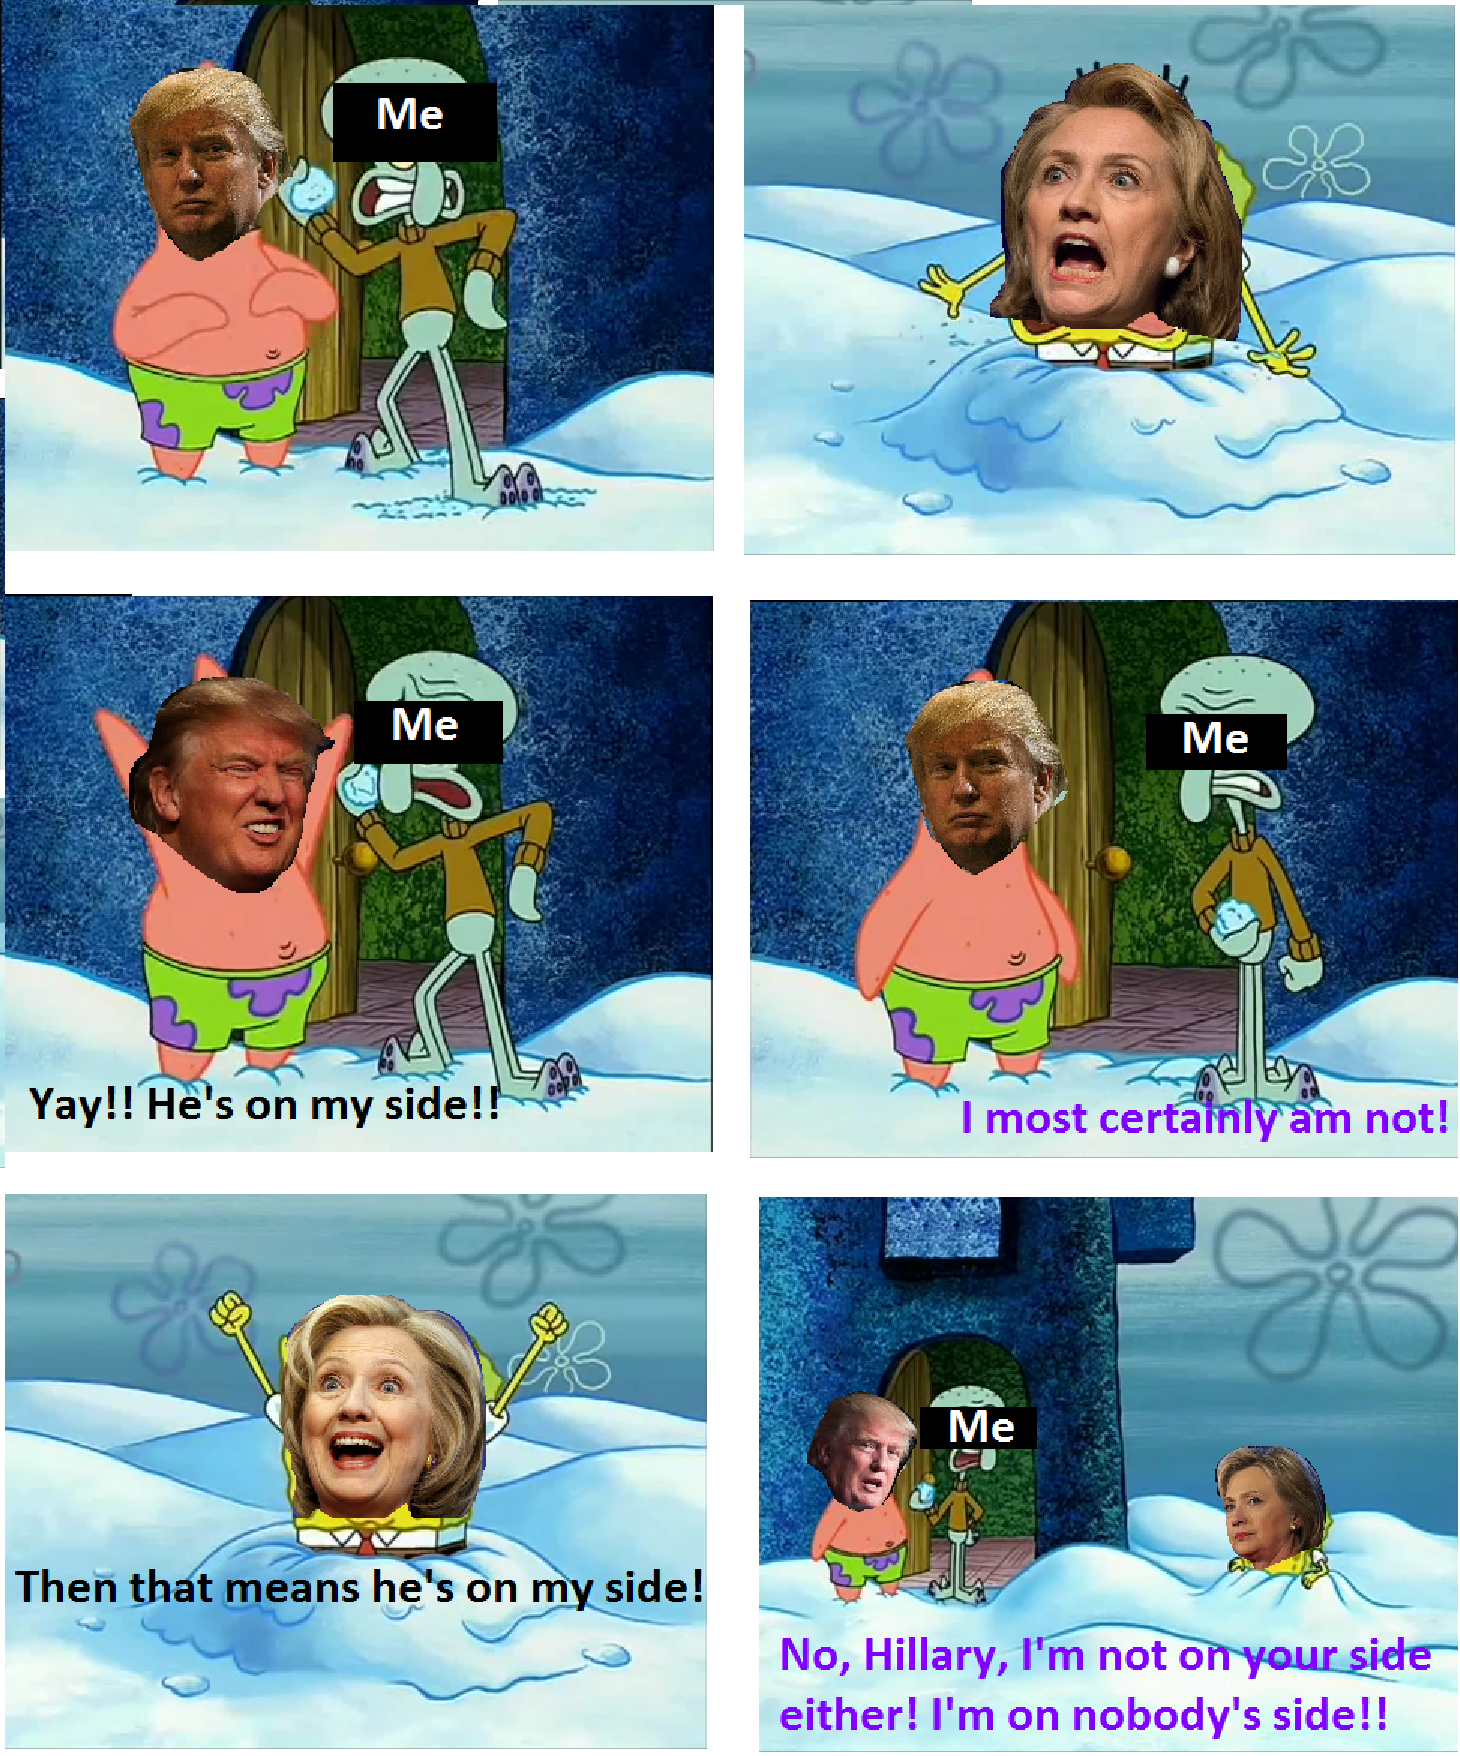 What the 2016 election feels like trump clinton spongebob politics 2016 election lol